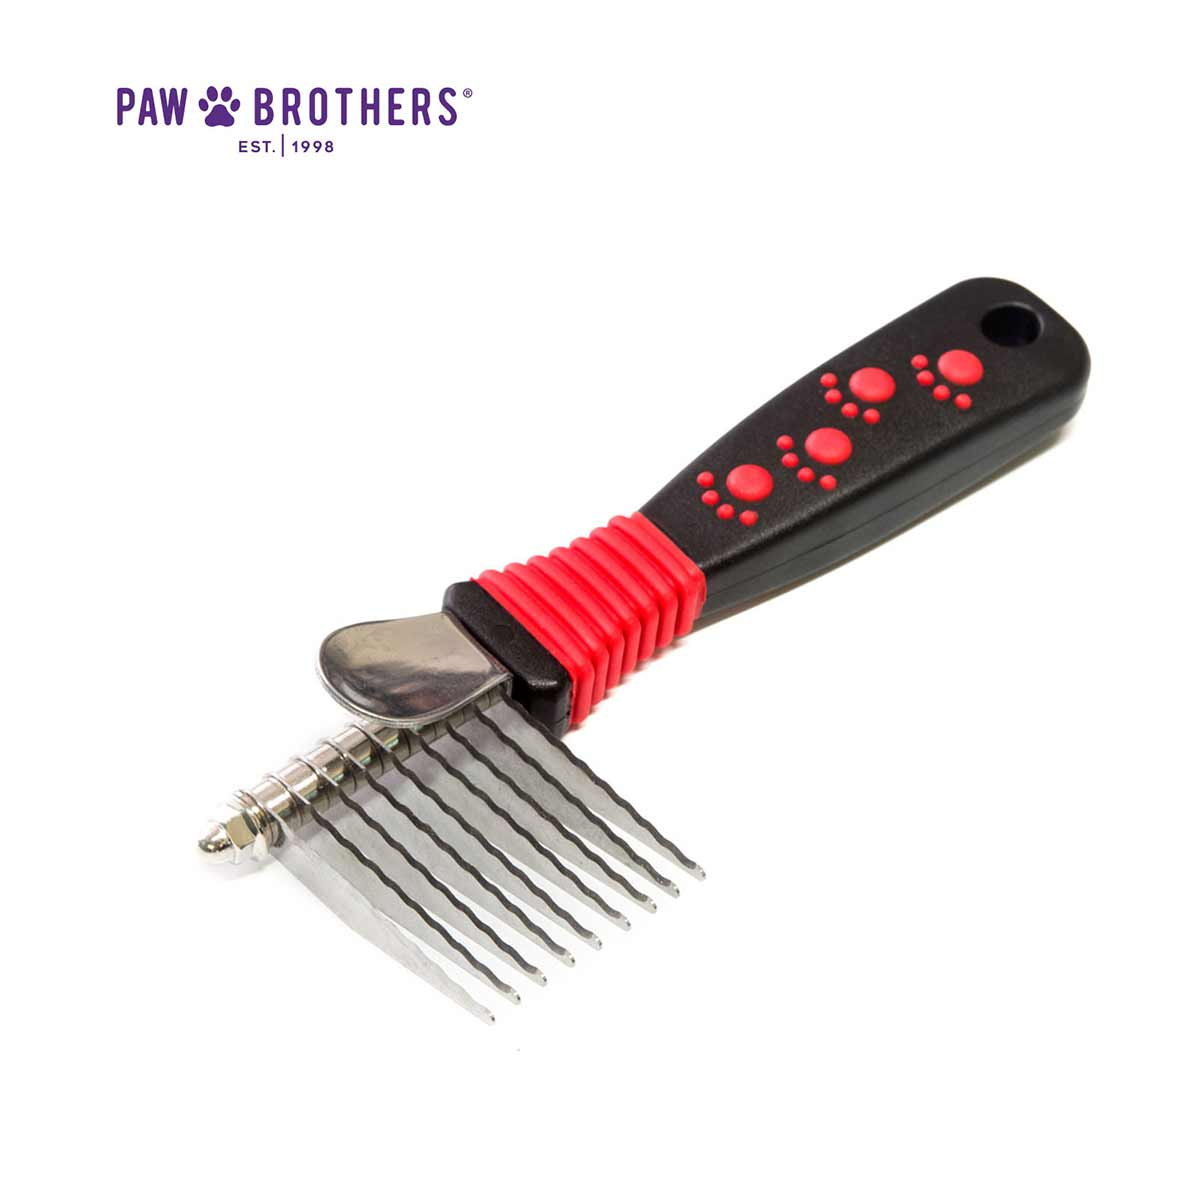 9 Blade Paw Brothers Dematting Tool